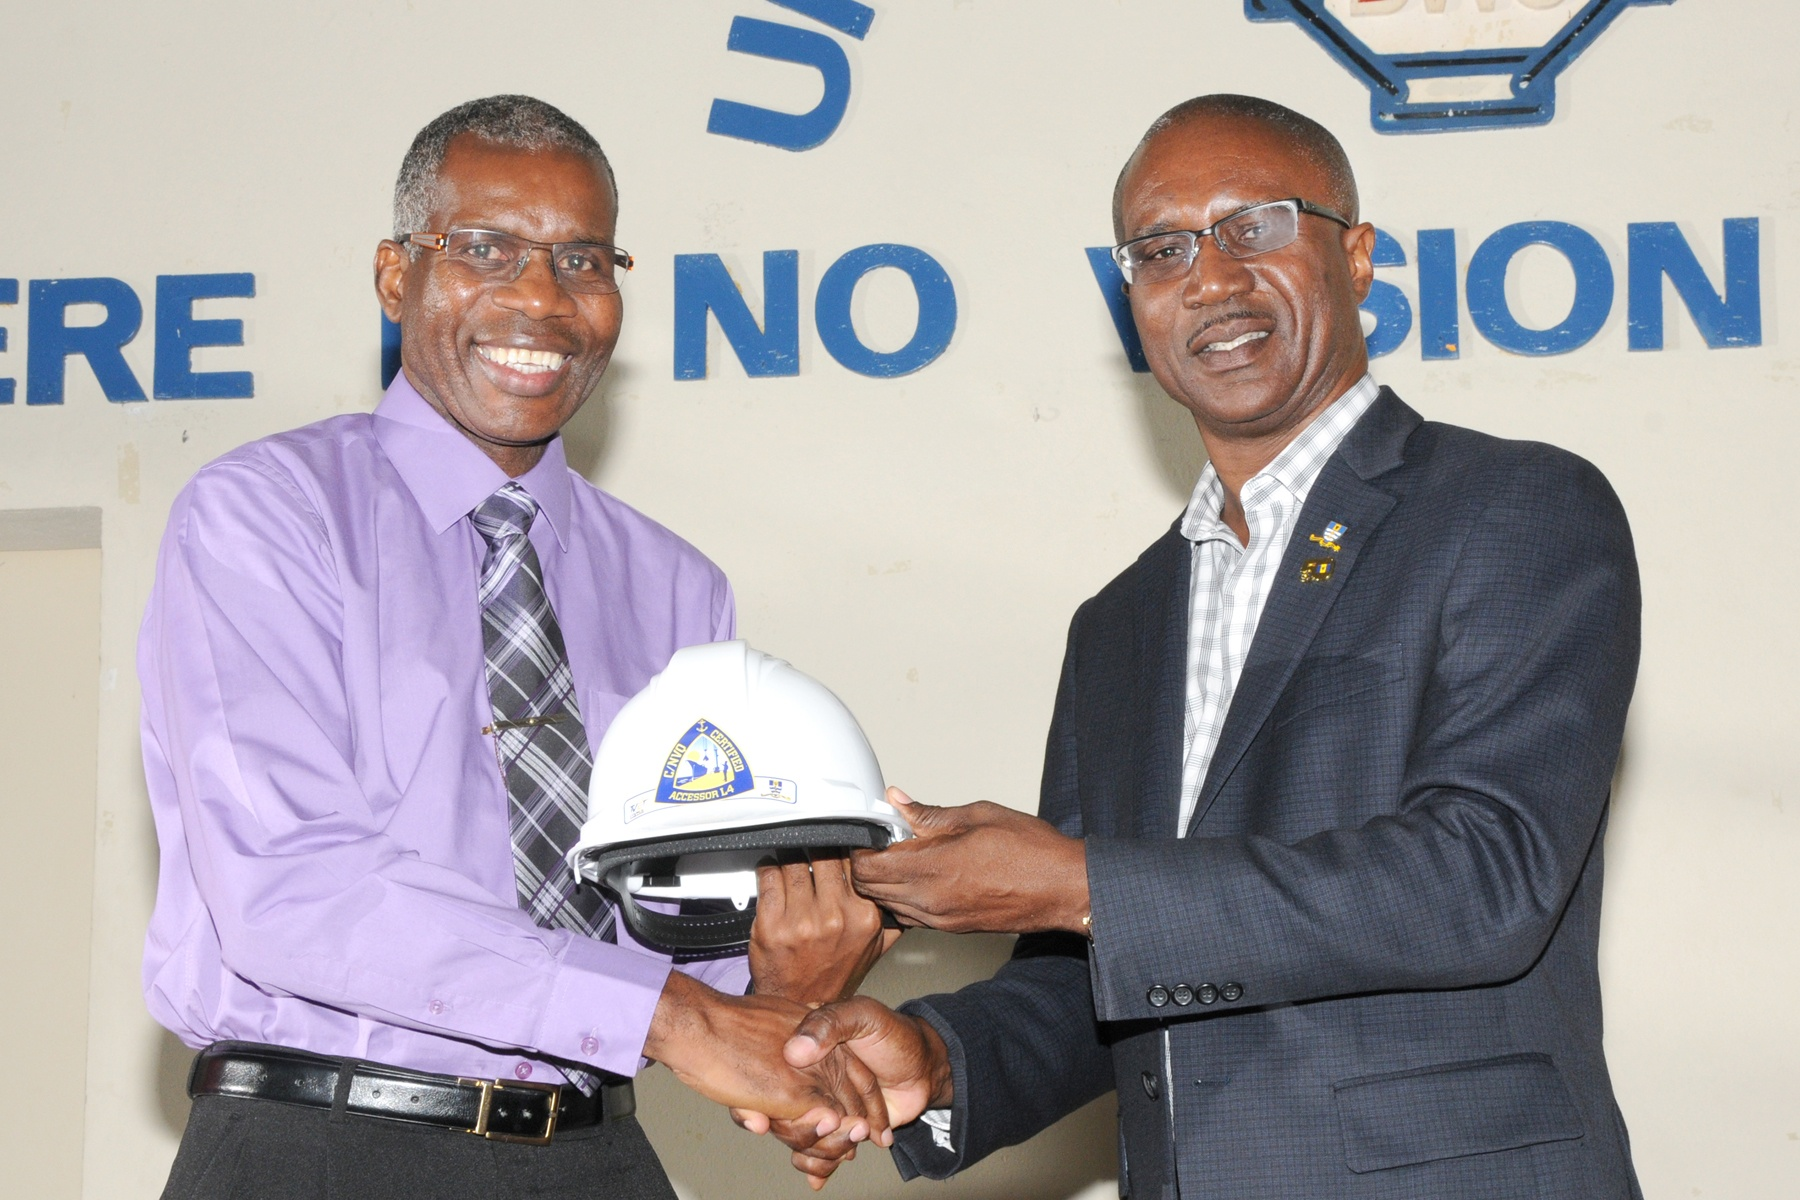 David Jean-Marie, CEO Barbados Port Inc presenting a helmet to one of the awardees